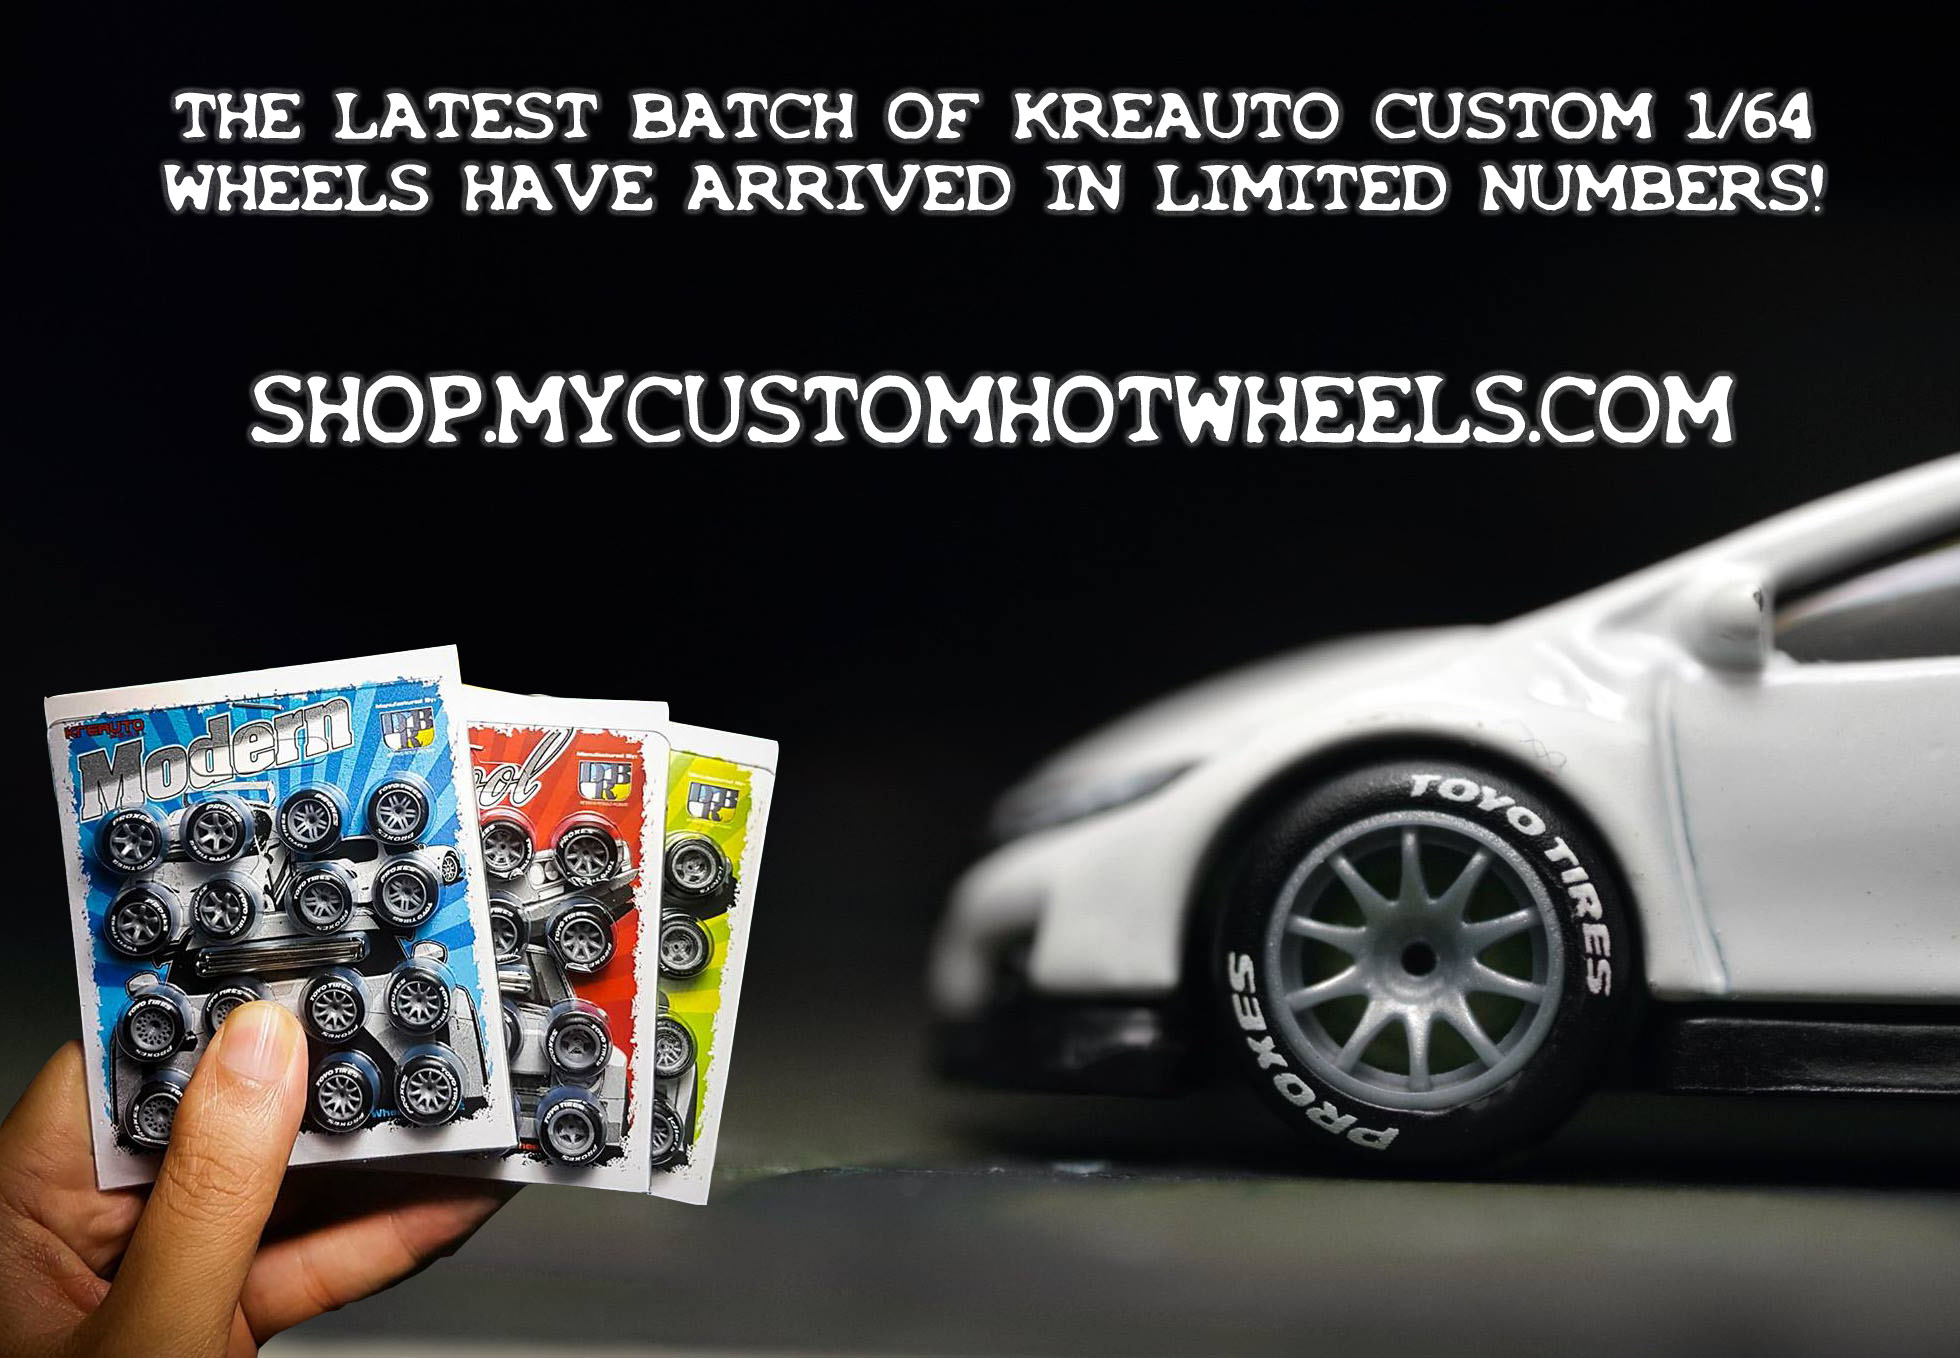 All Kreauto Custom 1 64 Wheels My Custom Hotwheels